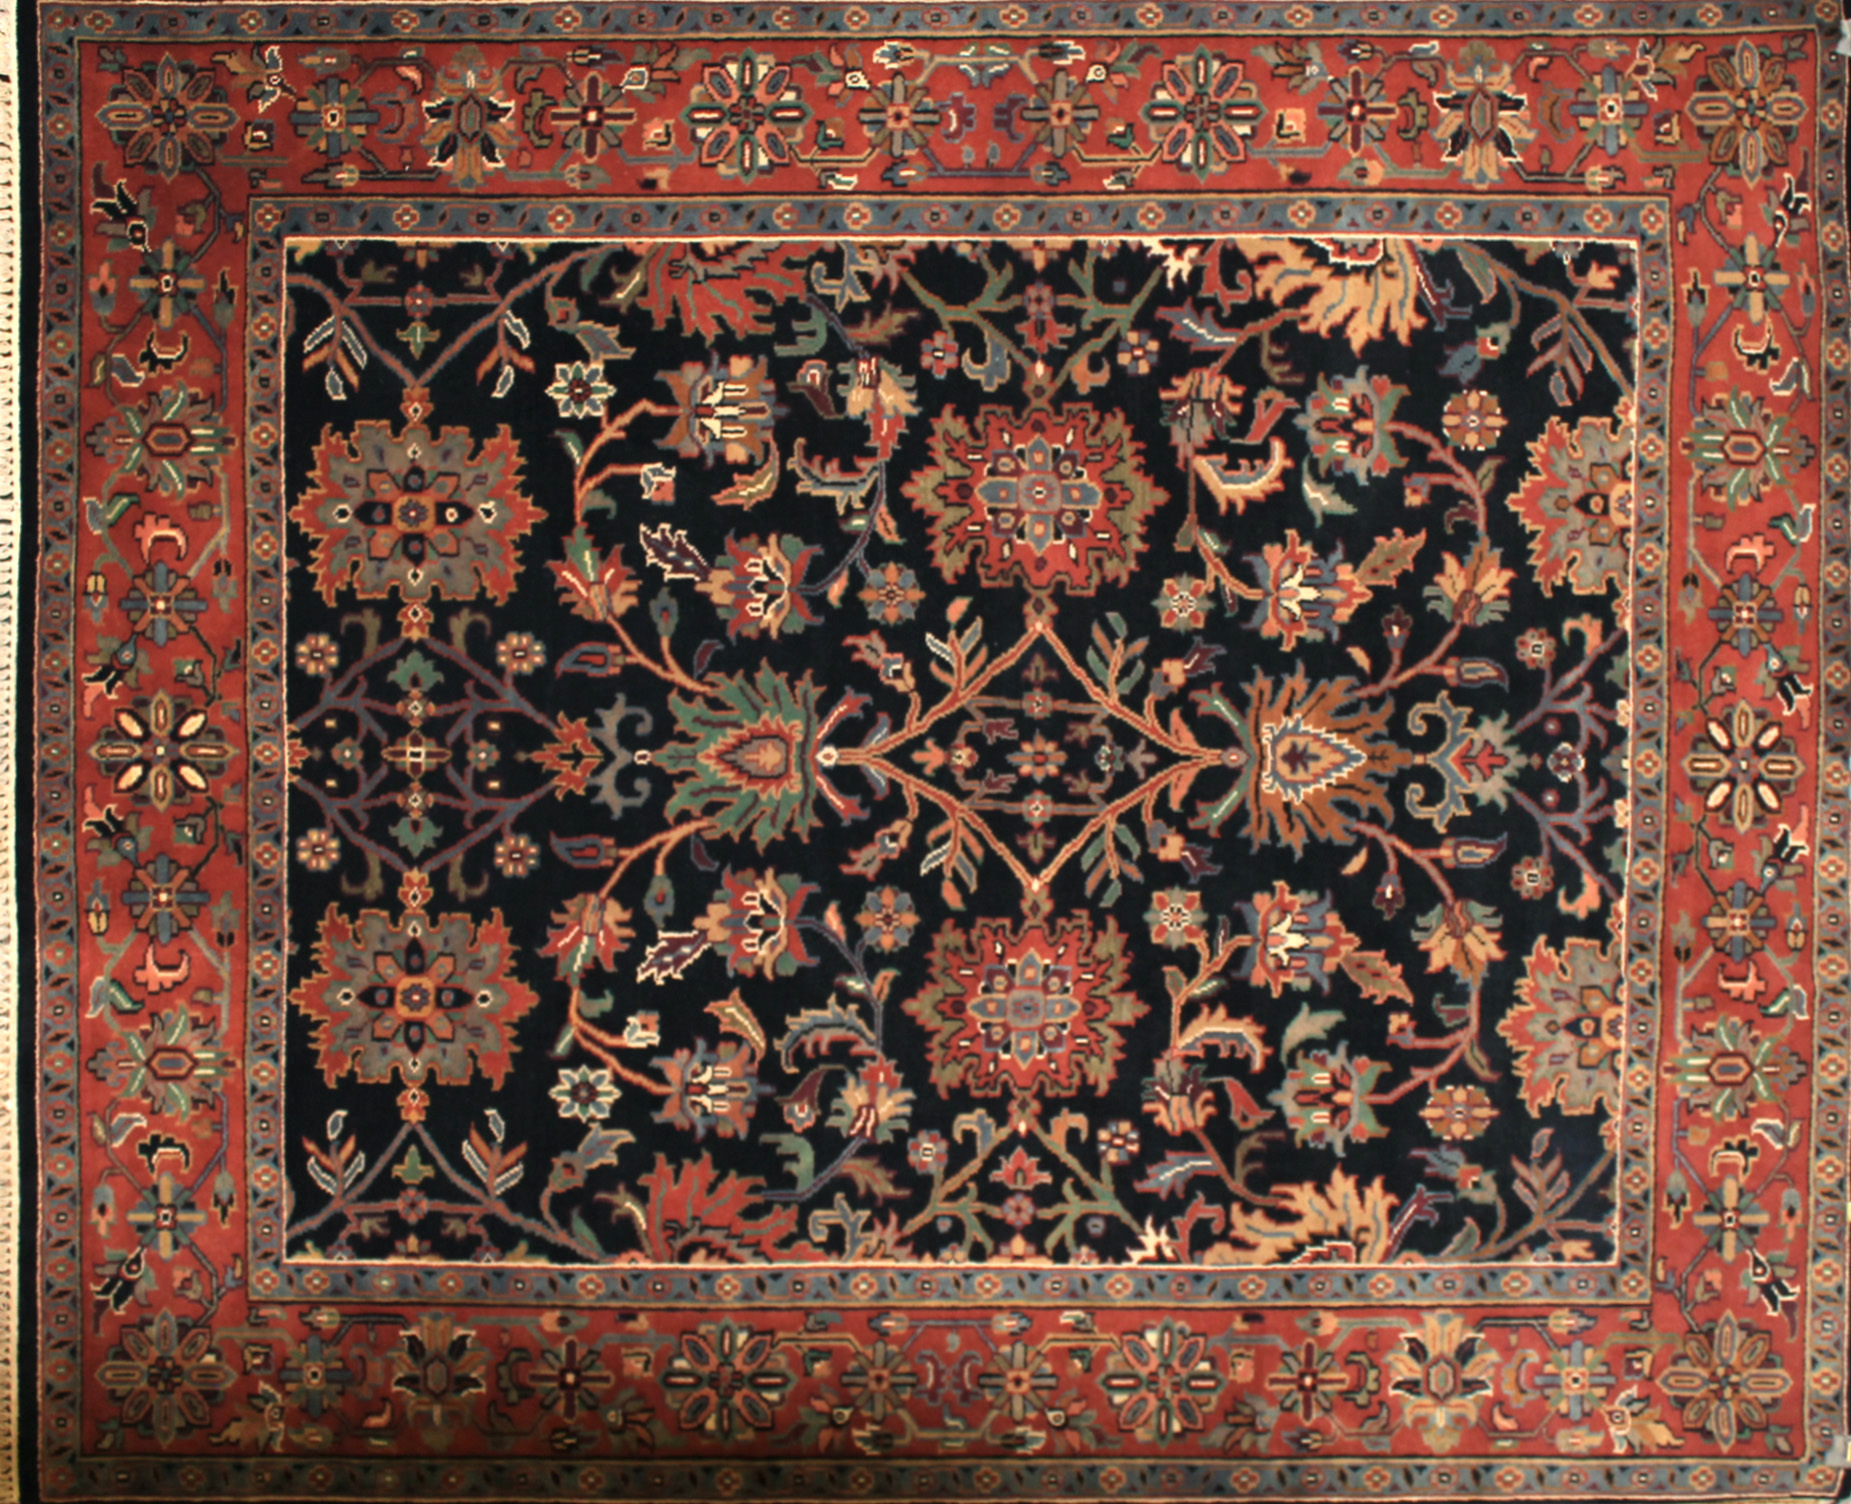 8x10 Traditional Hand Knotted Wool Area Rug - MR7510